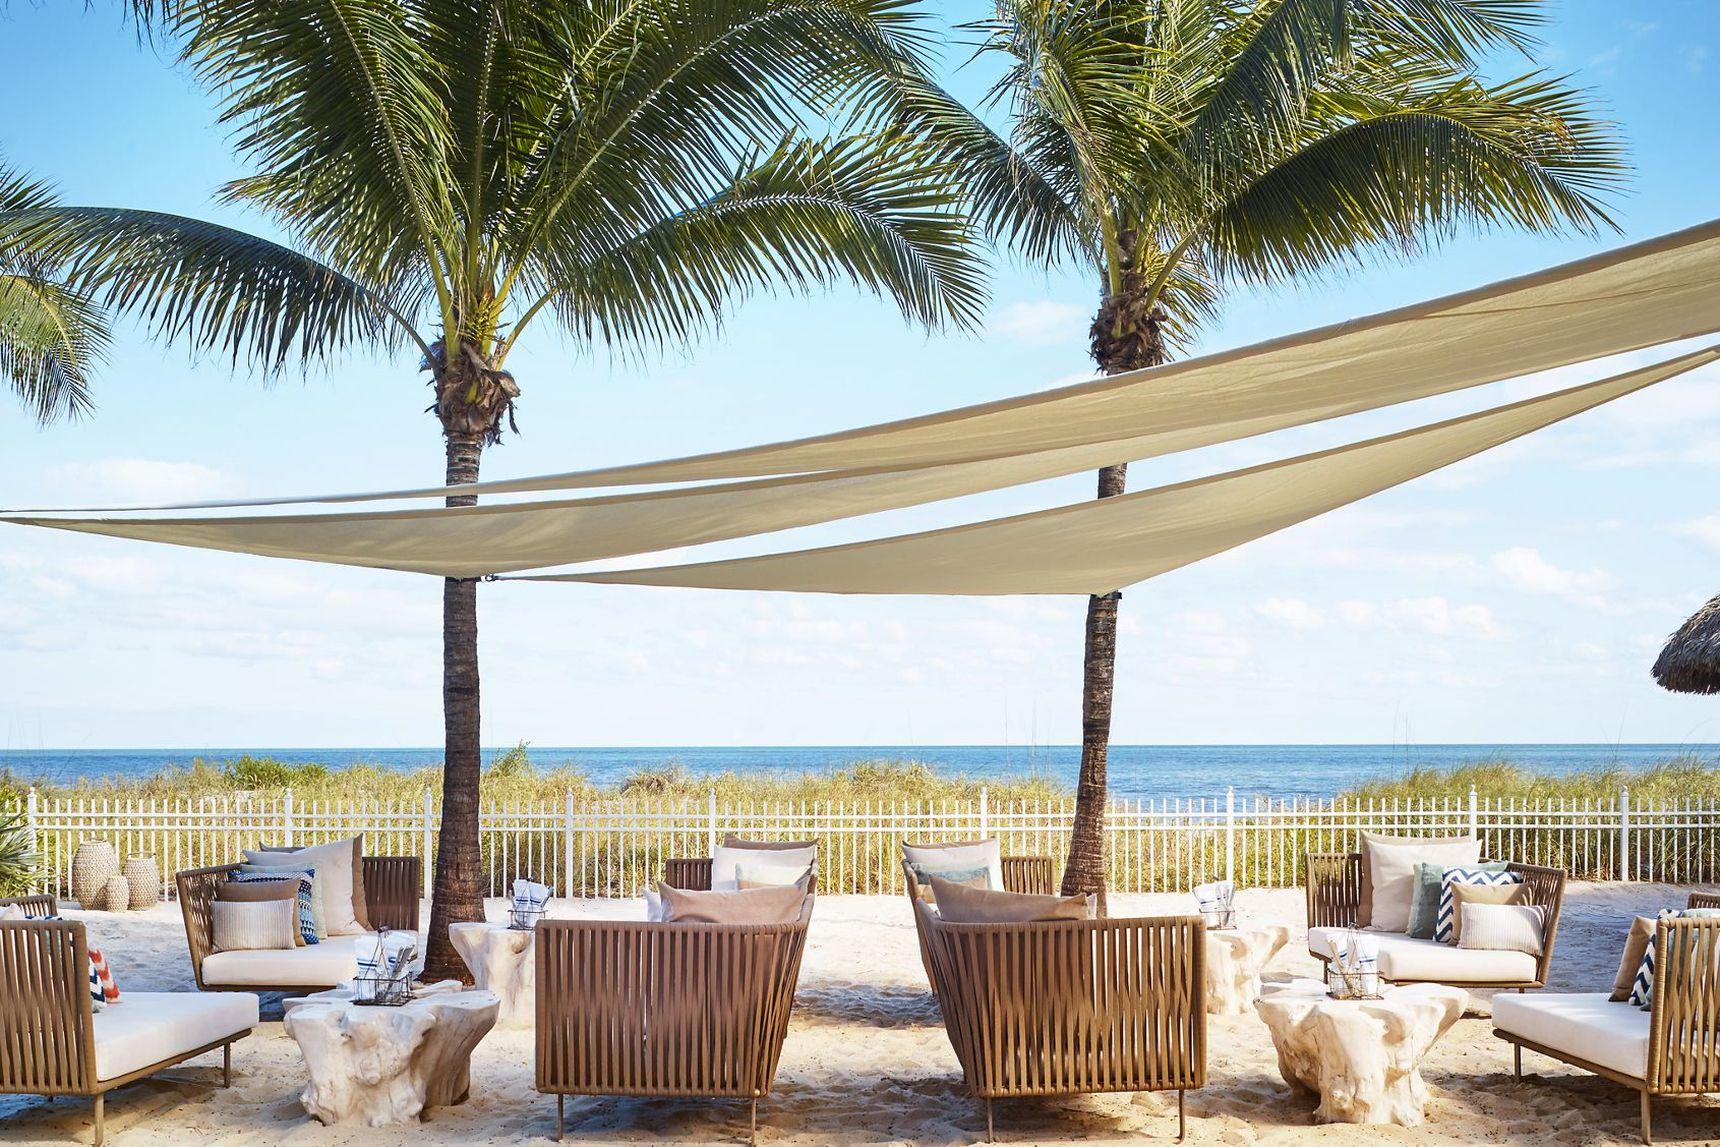 Tour the Luxurious, New, Redesigned Ritz-Carlton on Key Biscayne